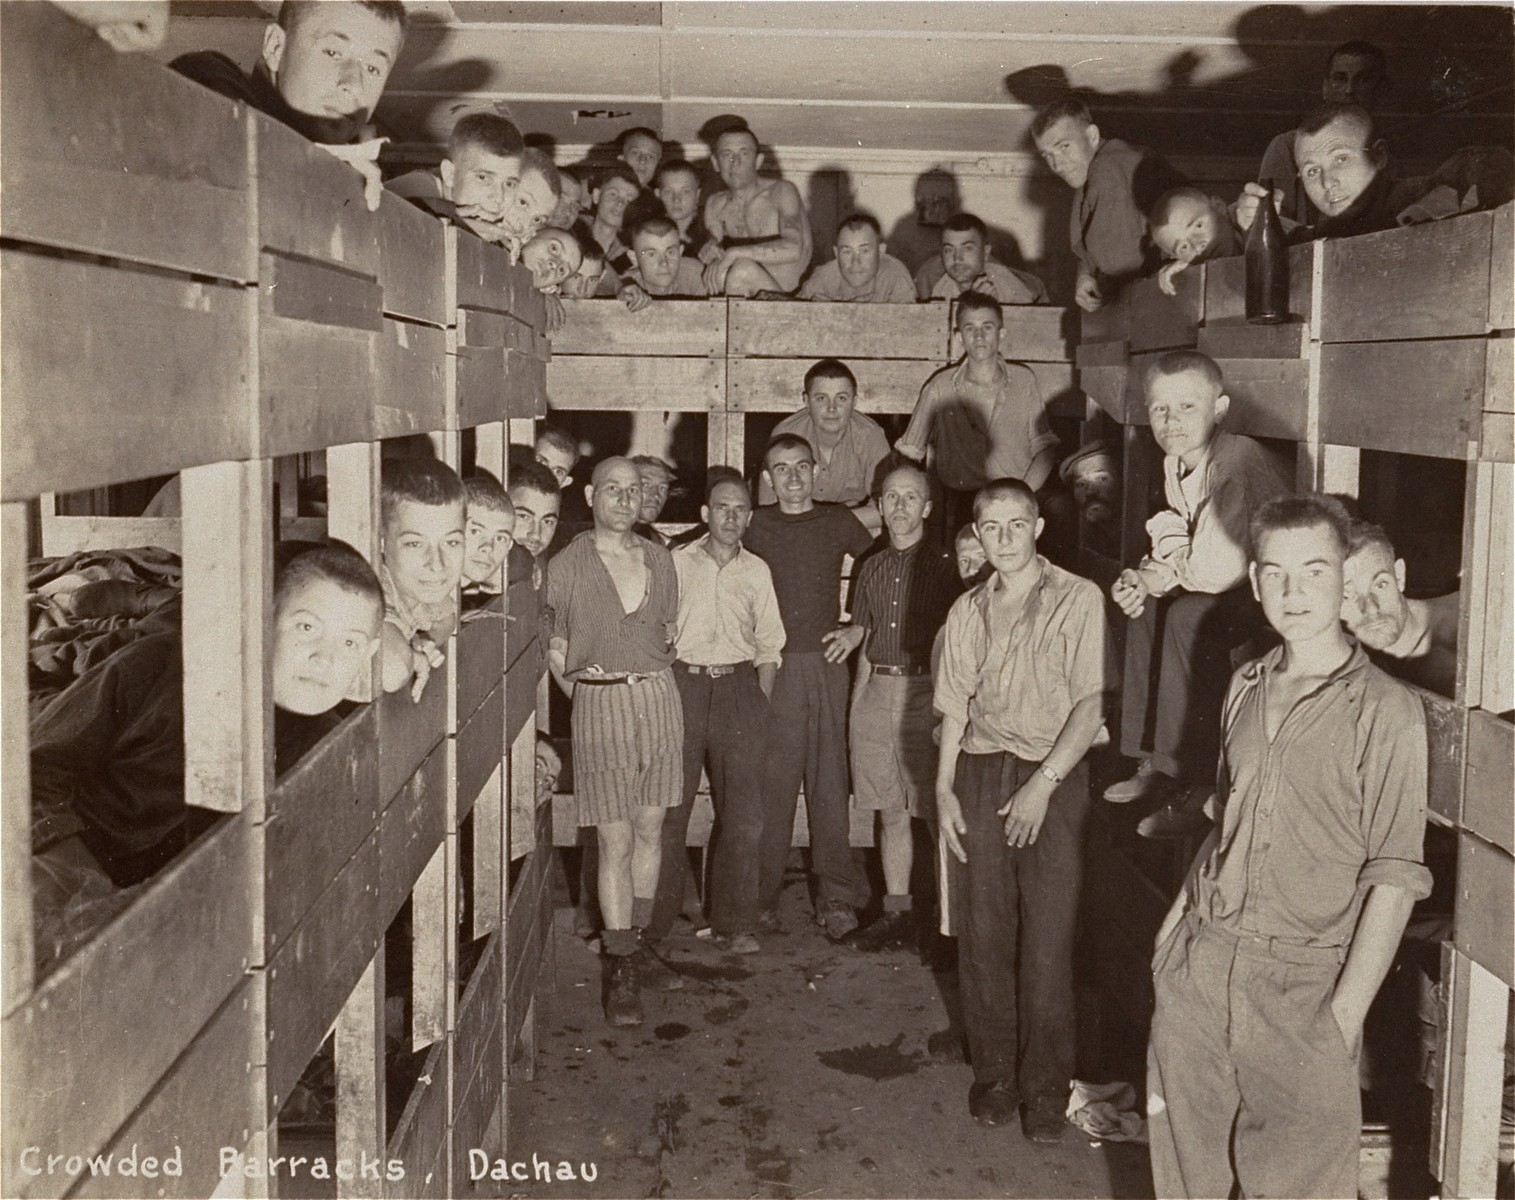 Survivors in a crowded Dachau barrack after liberation.